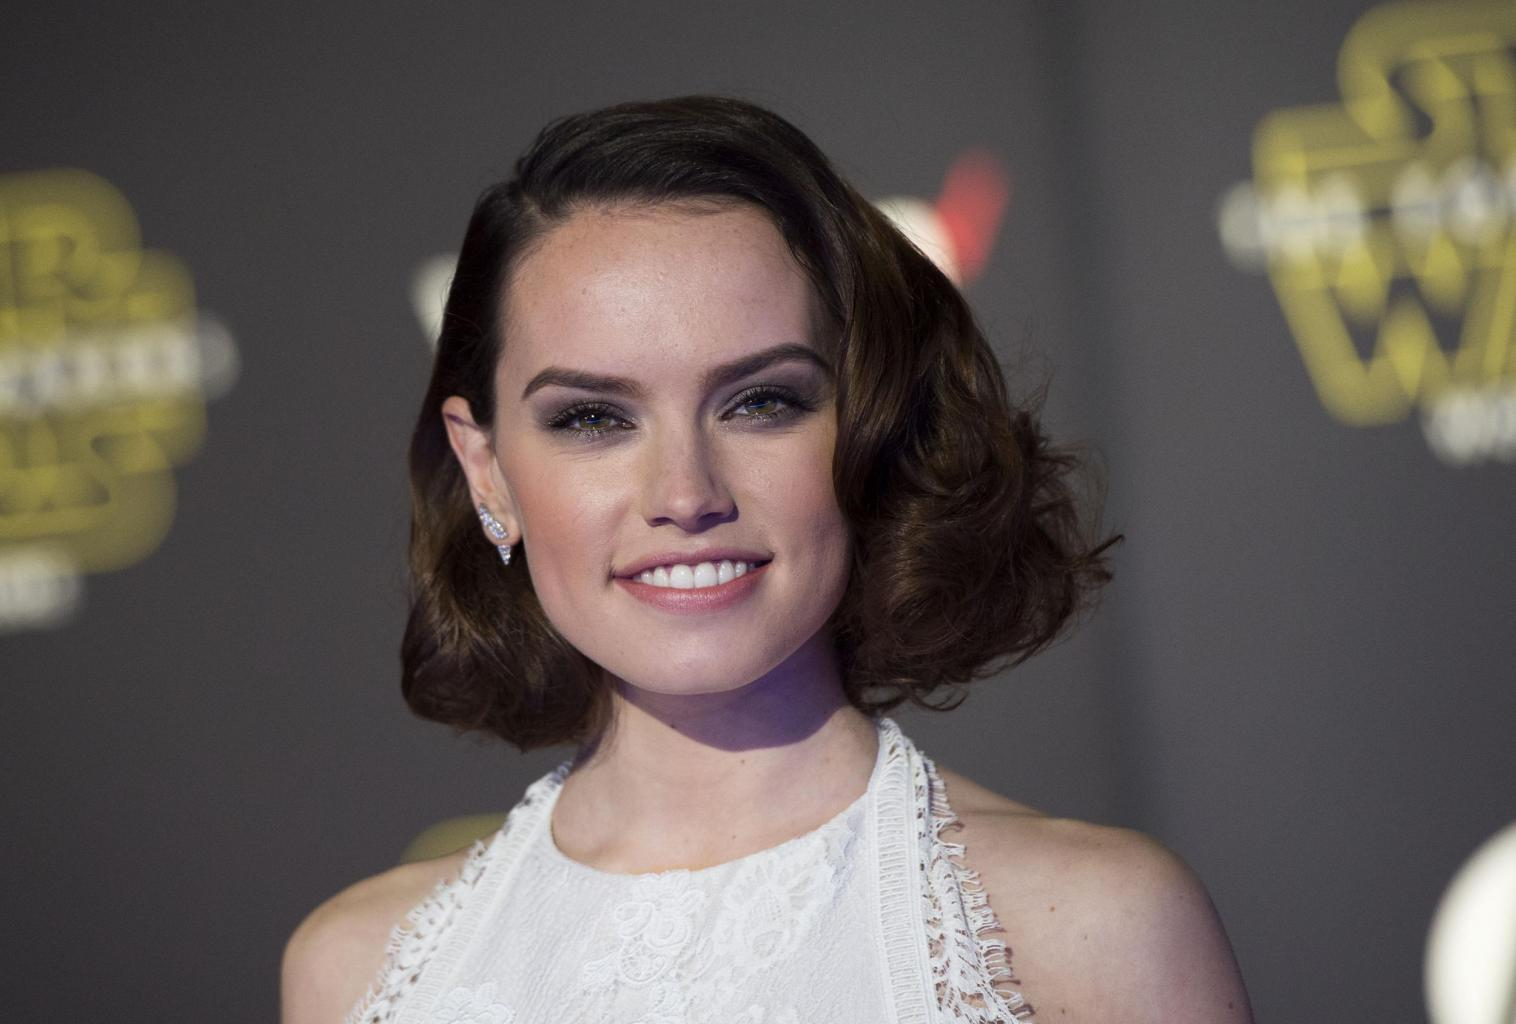 Star Wars: The Force Awakens' Daisy Ridley Lends Voice T